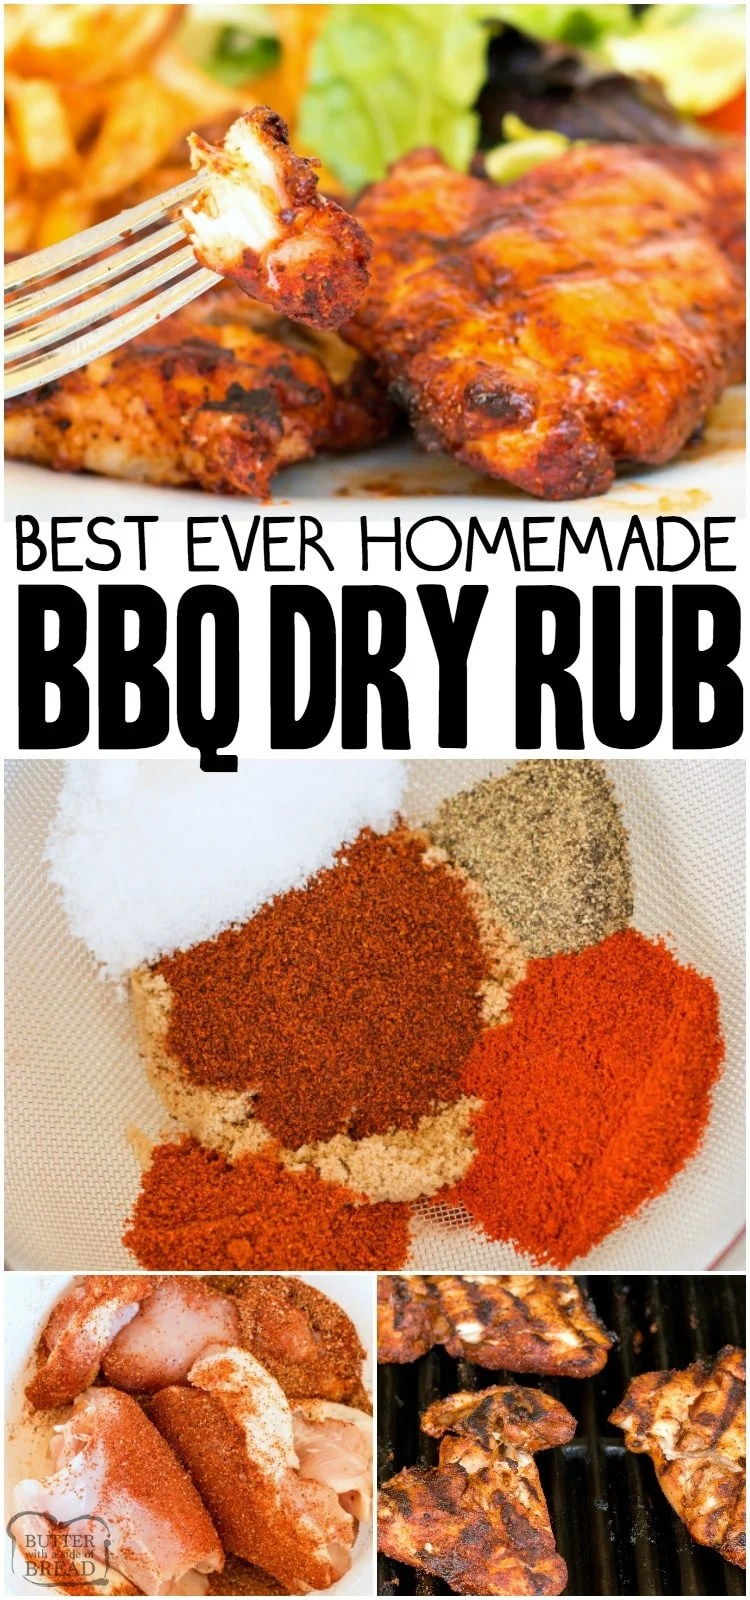 Best BBQ Dry Rub that can be used on chicken, beef, pork and fish.  BBQ rub recipe that is simple to make and adds a great flavor to grilled meats. #bbq #grilling #meat #bbqrub #dryrub #seasoning #recipe from BUTTER WITH A SIDE OF BREAD